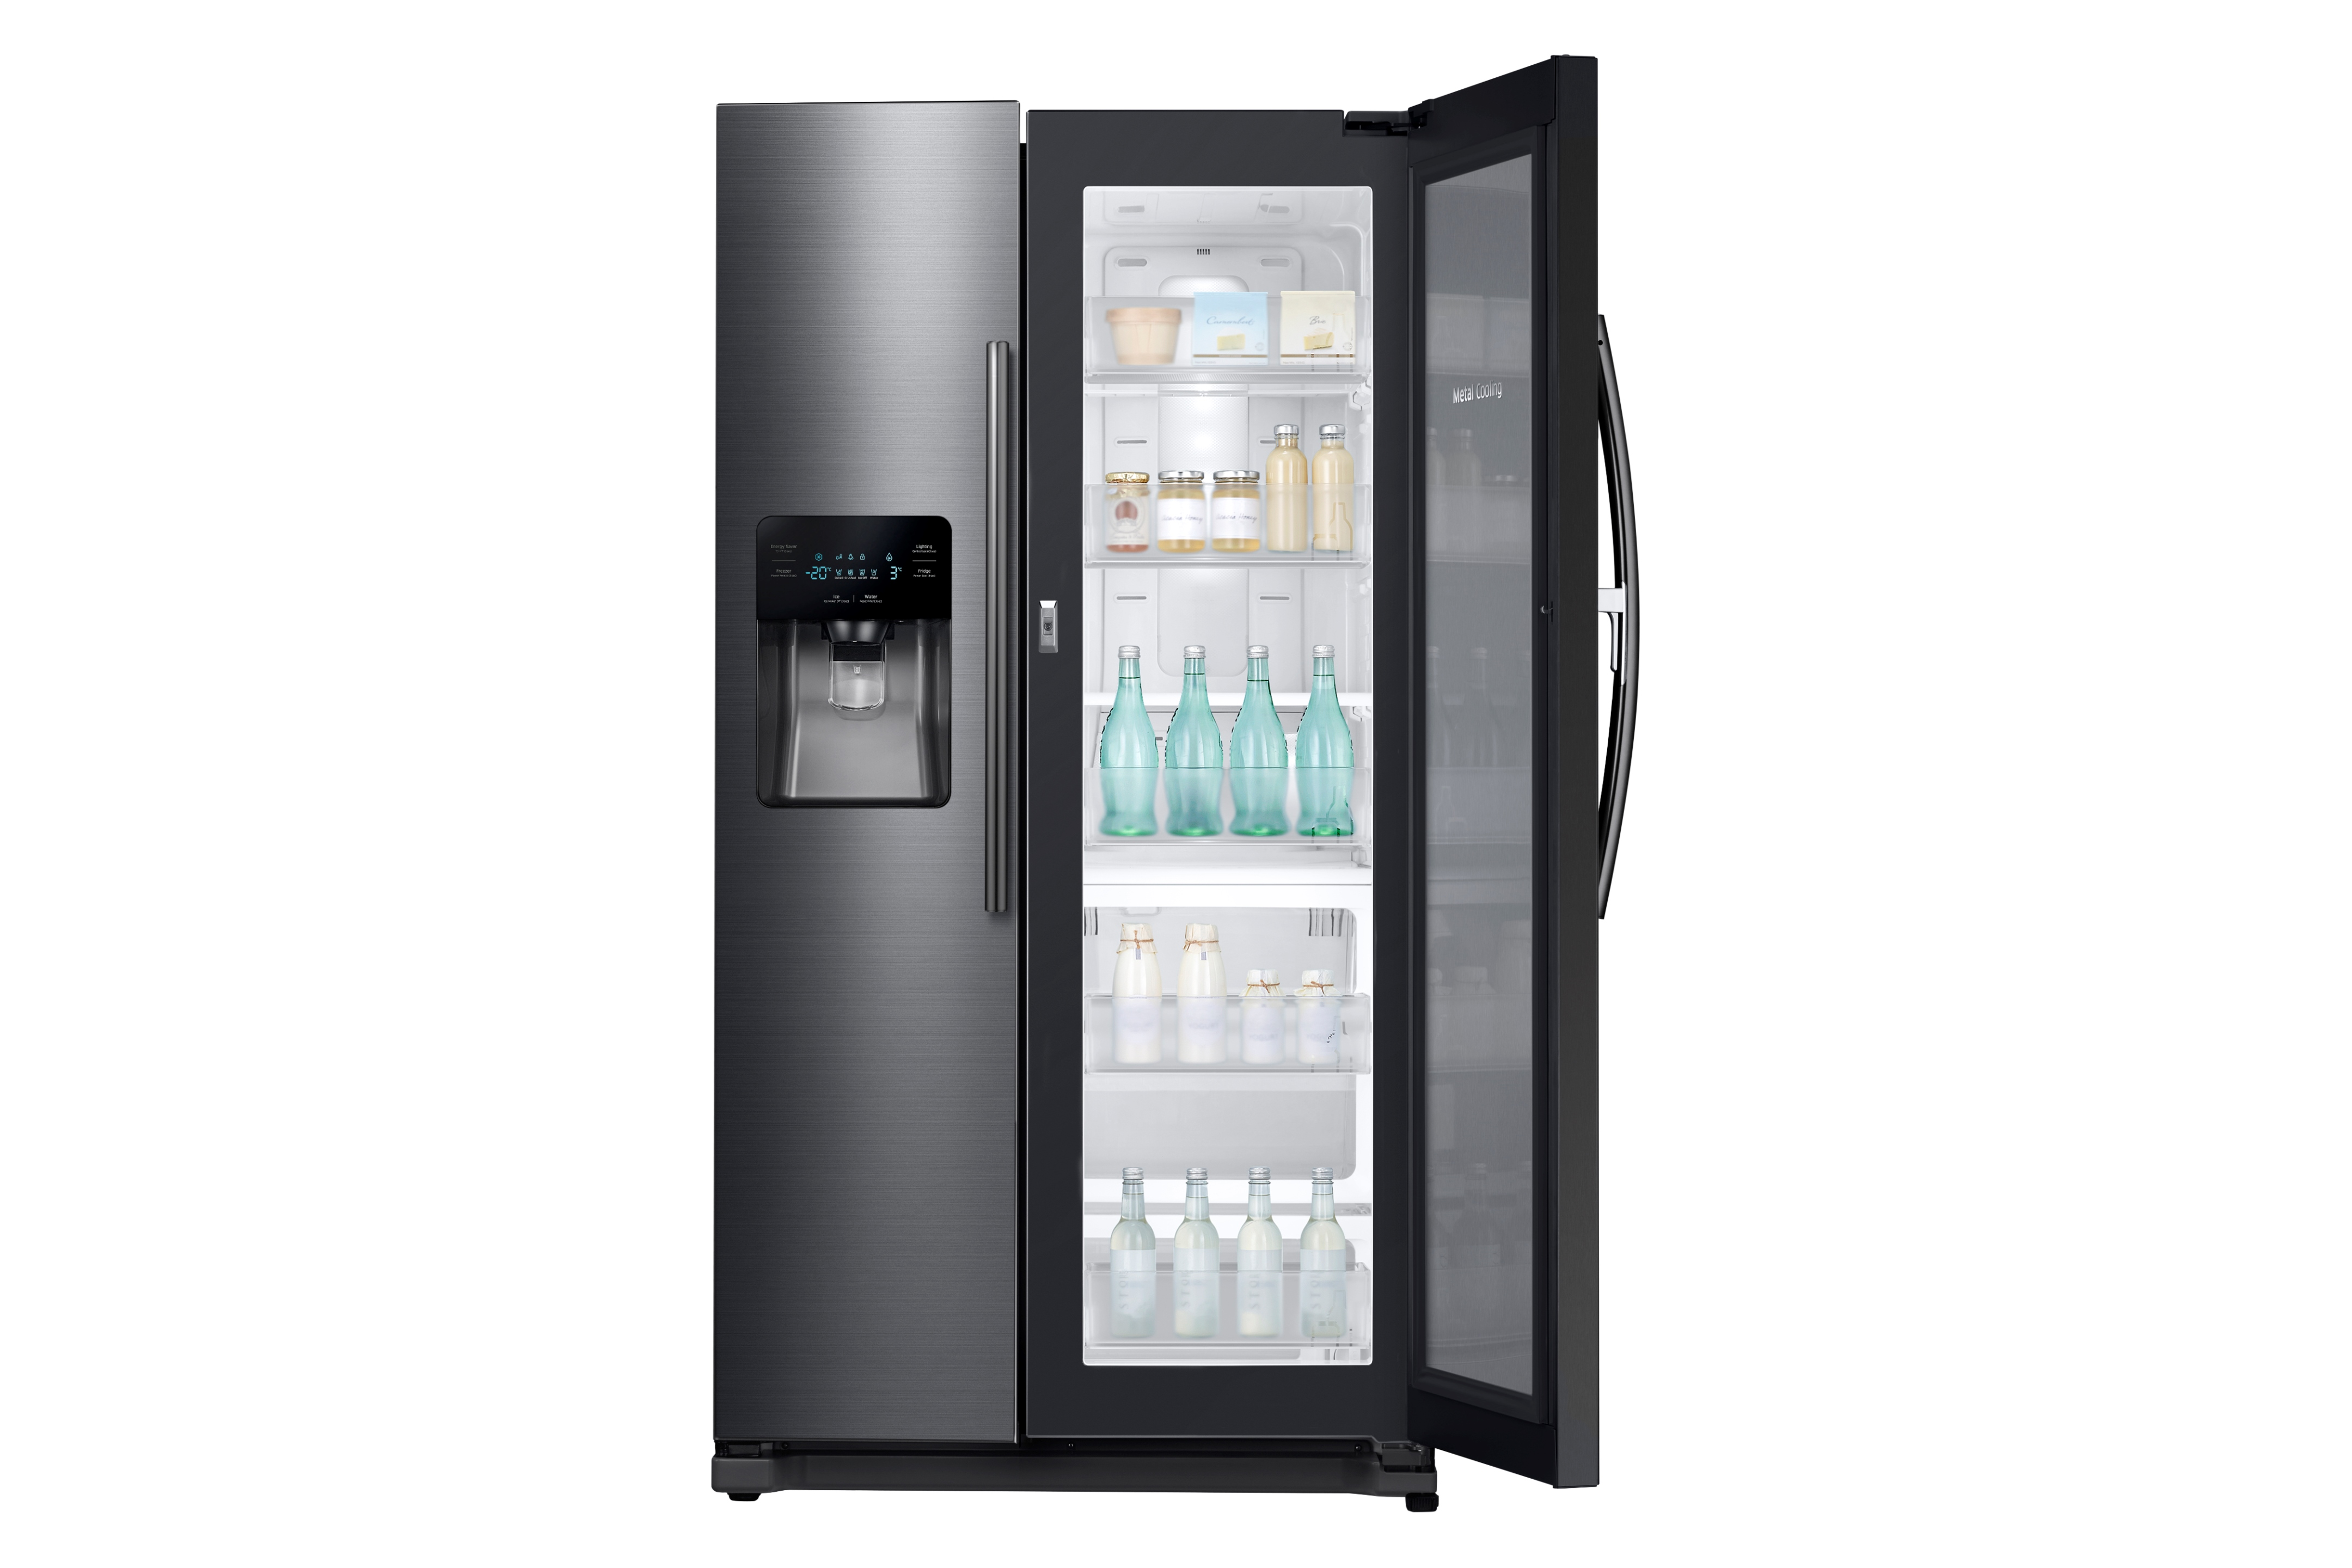 Samsung RH25H5611SG/AA 24.7 cu. ft. Capacity Side-by-Side Food ShowCase Refrigerator with Metal Cooling - Black Stainless Steel